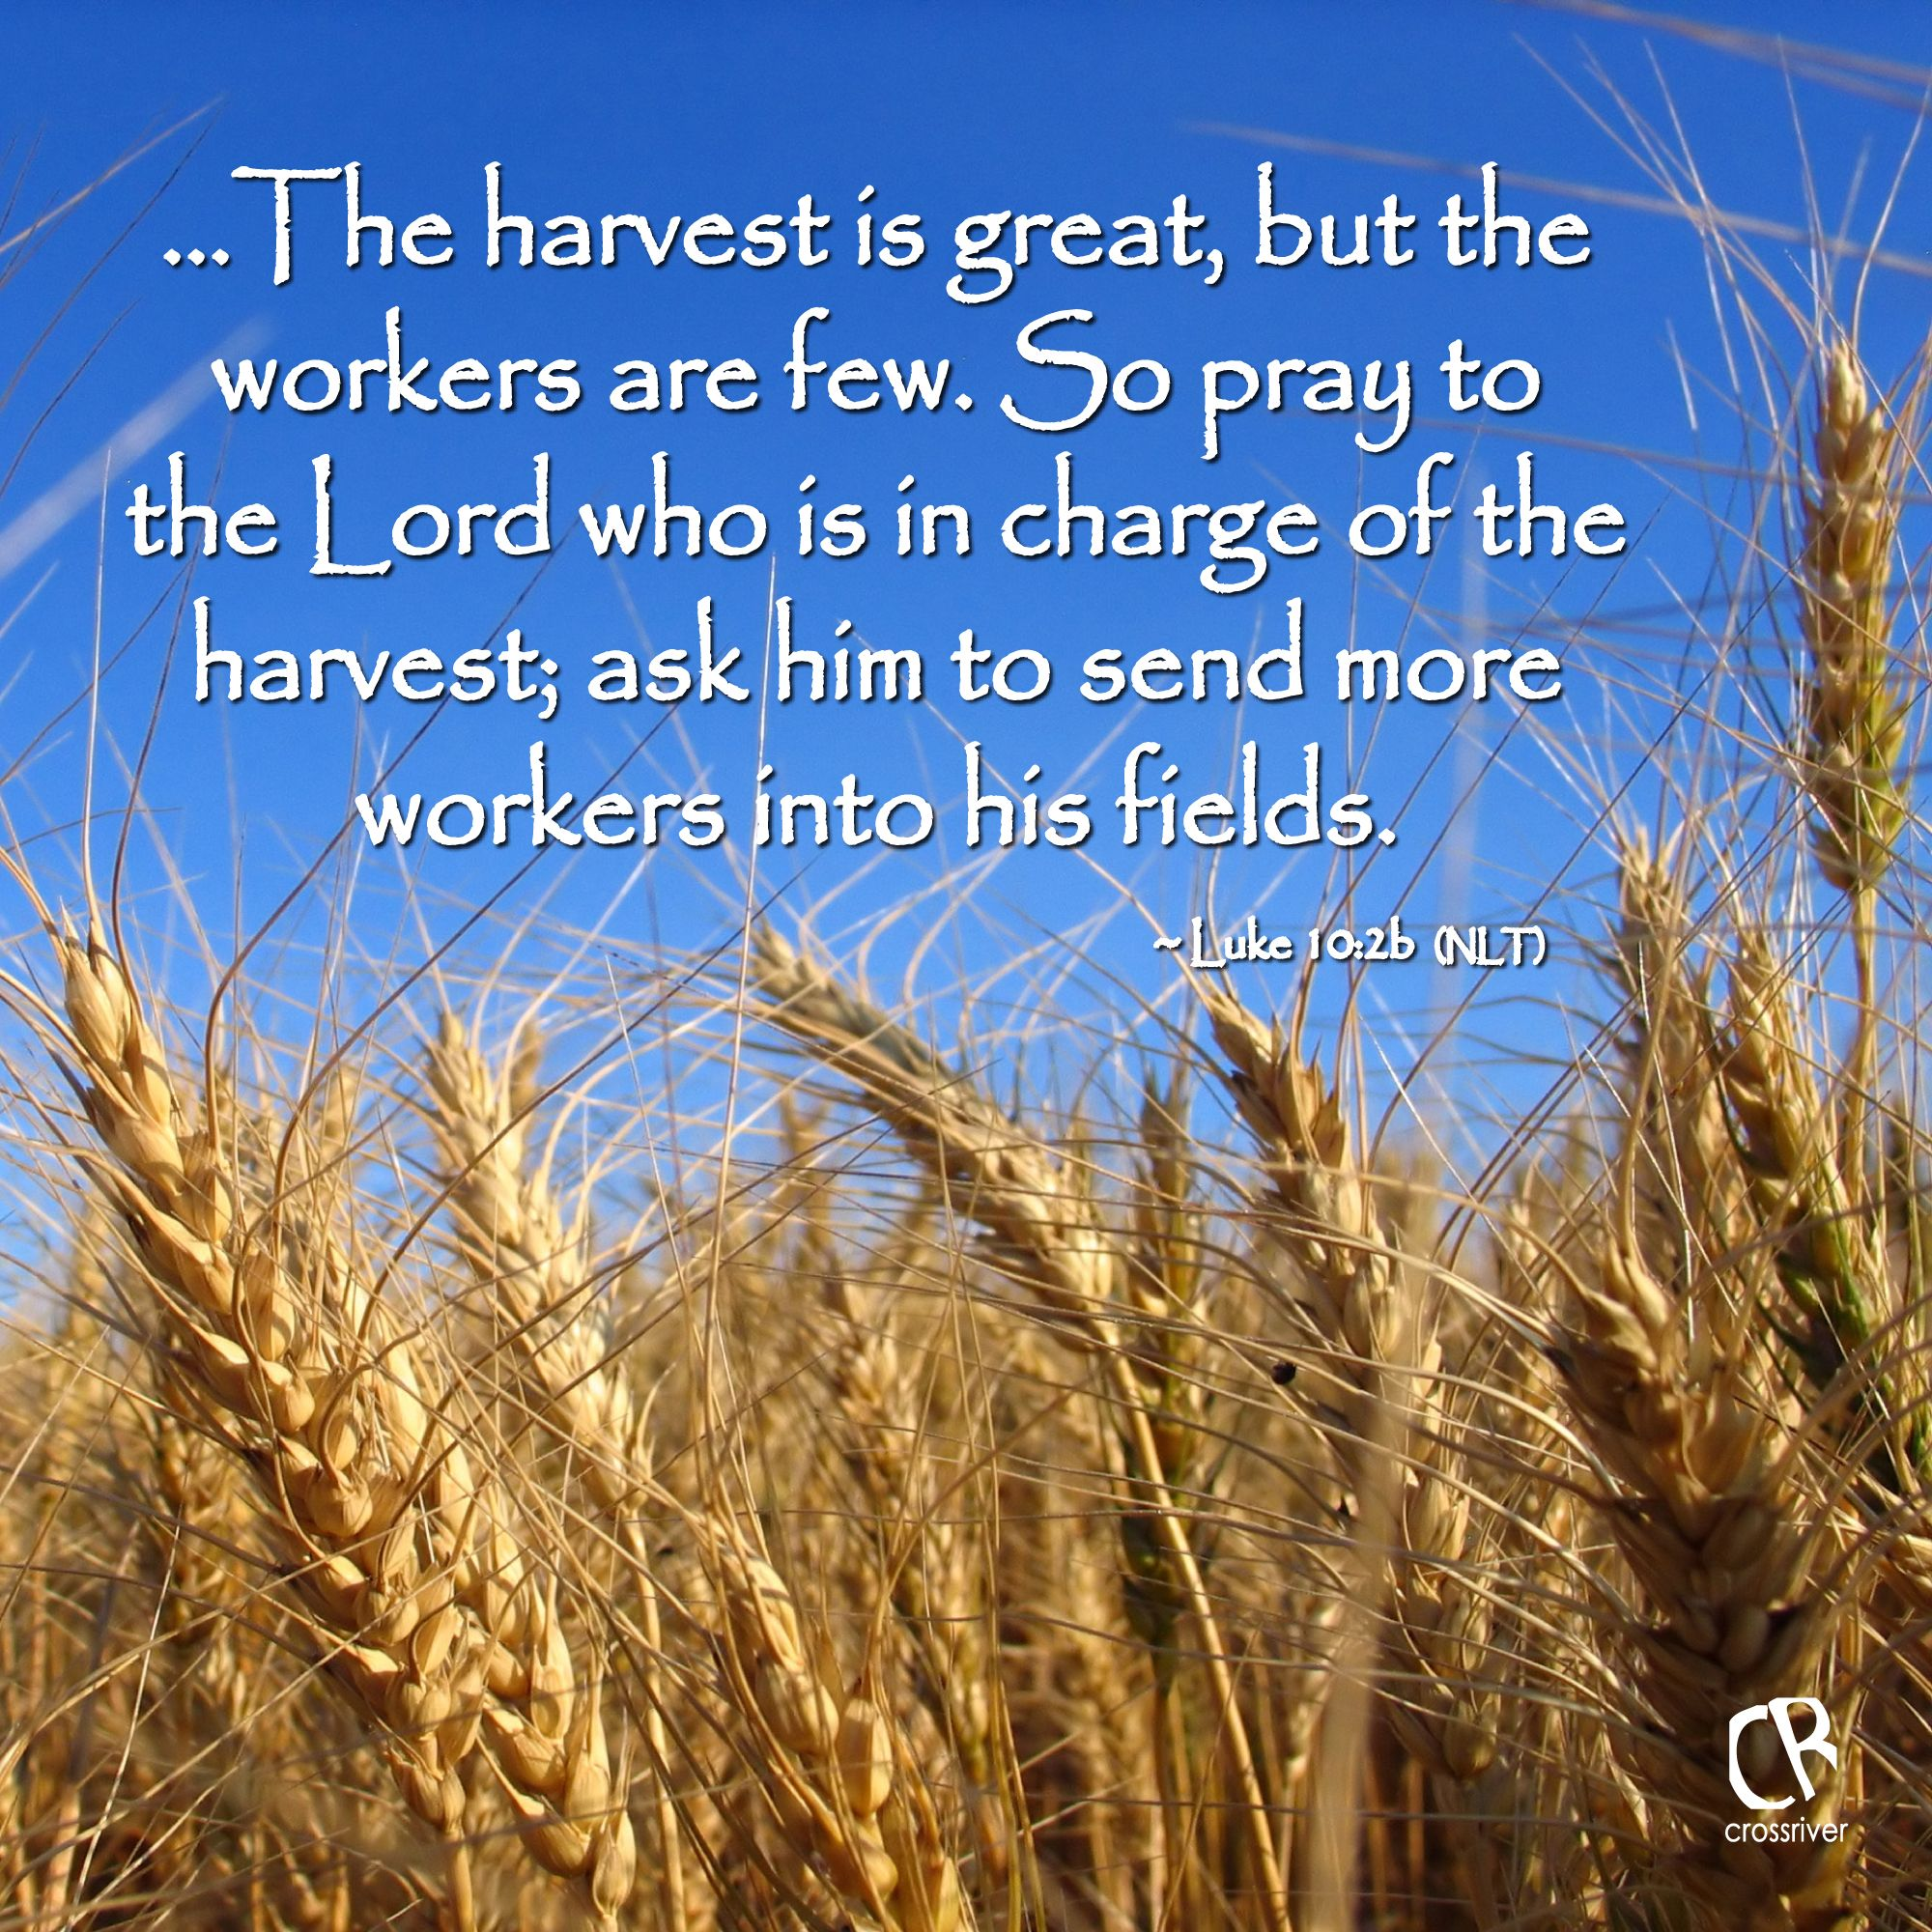 Bible Verse Quotes: ...The Harvest Is Great, But The Workers Are Few. So Pray